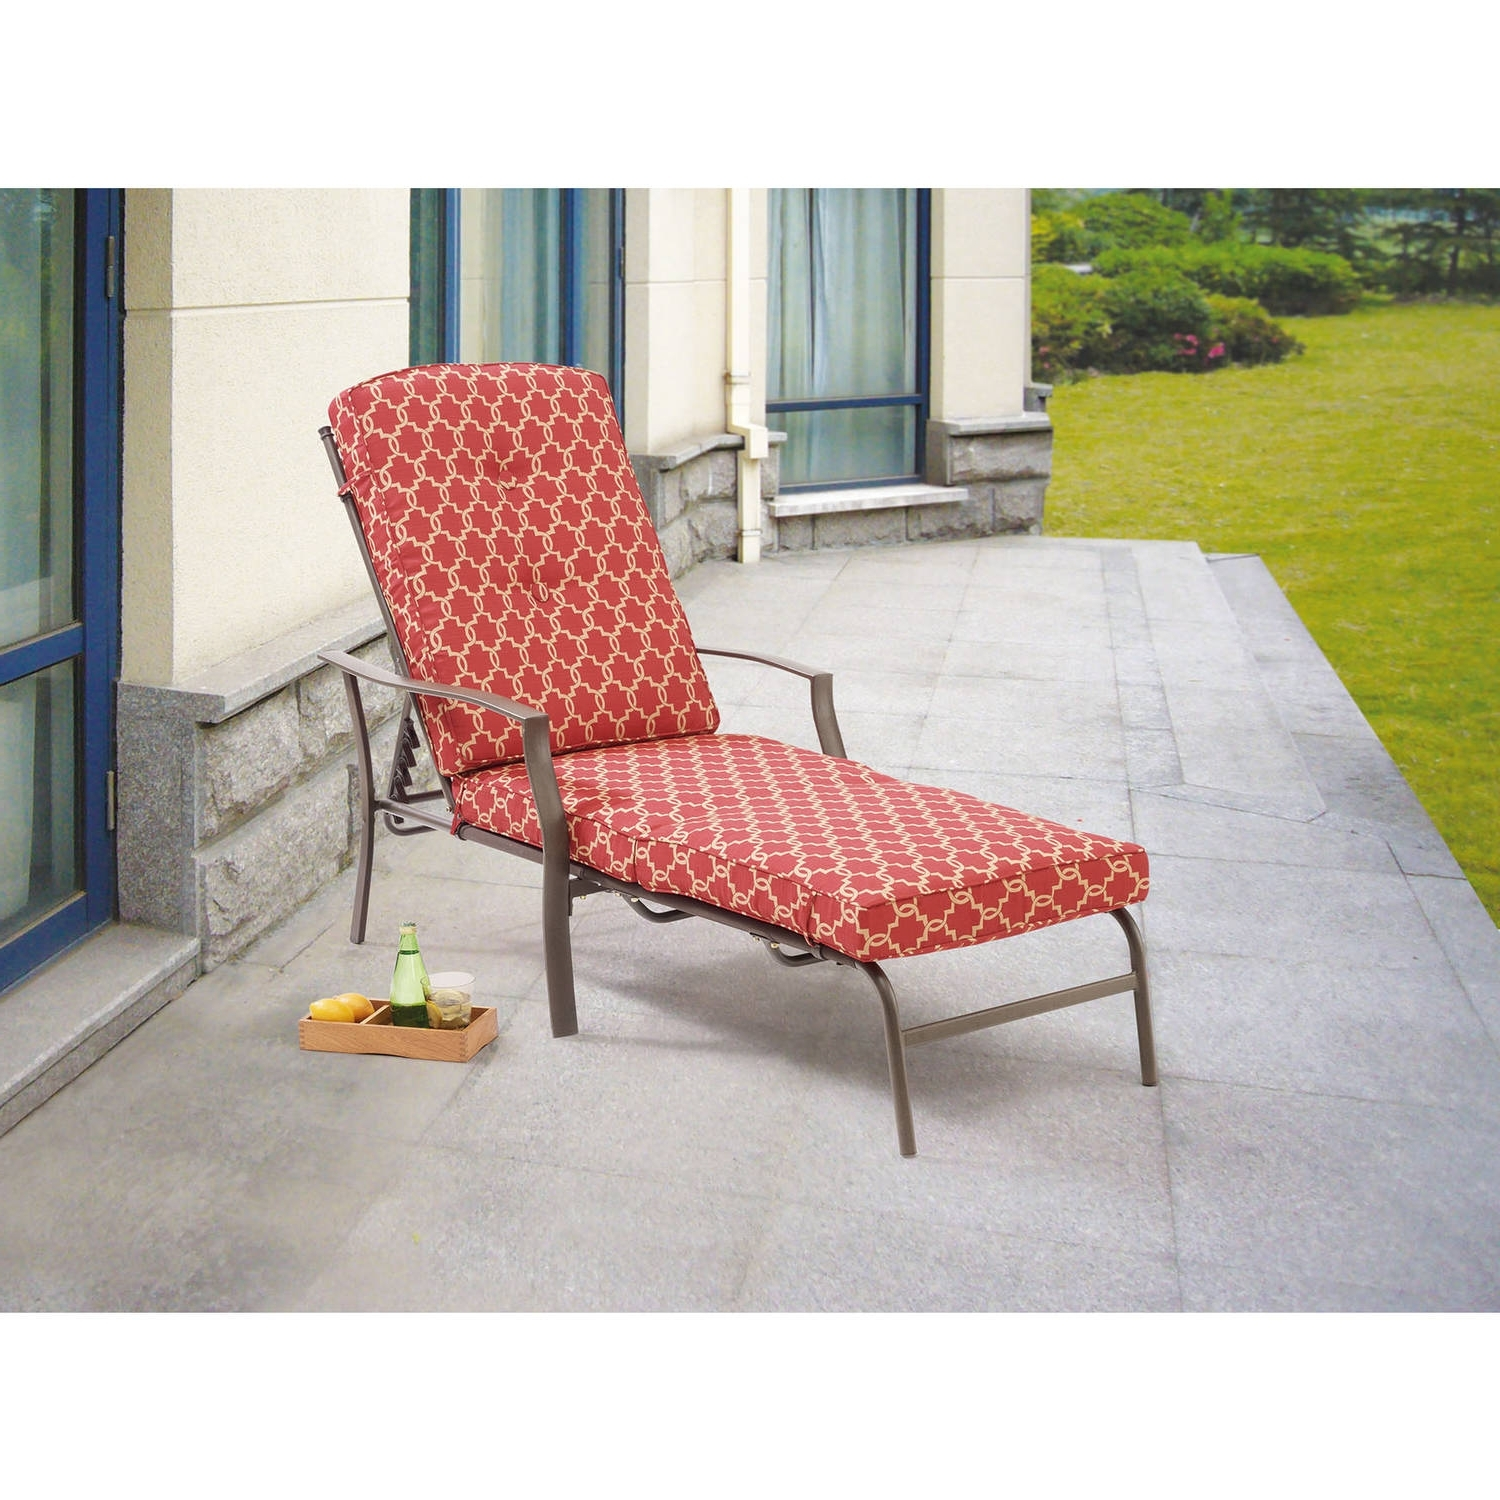 Patio Chaise Lounge Clearance Intended For Preferred Outsunny Outdoor Patio Synthetic Rattan Wicker 3 Pc Chaise Lounge (View 10 of 15)